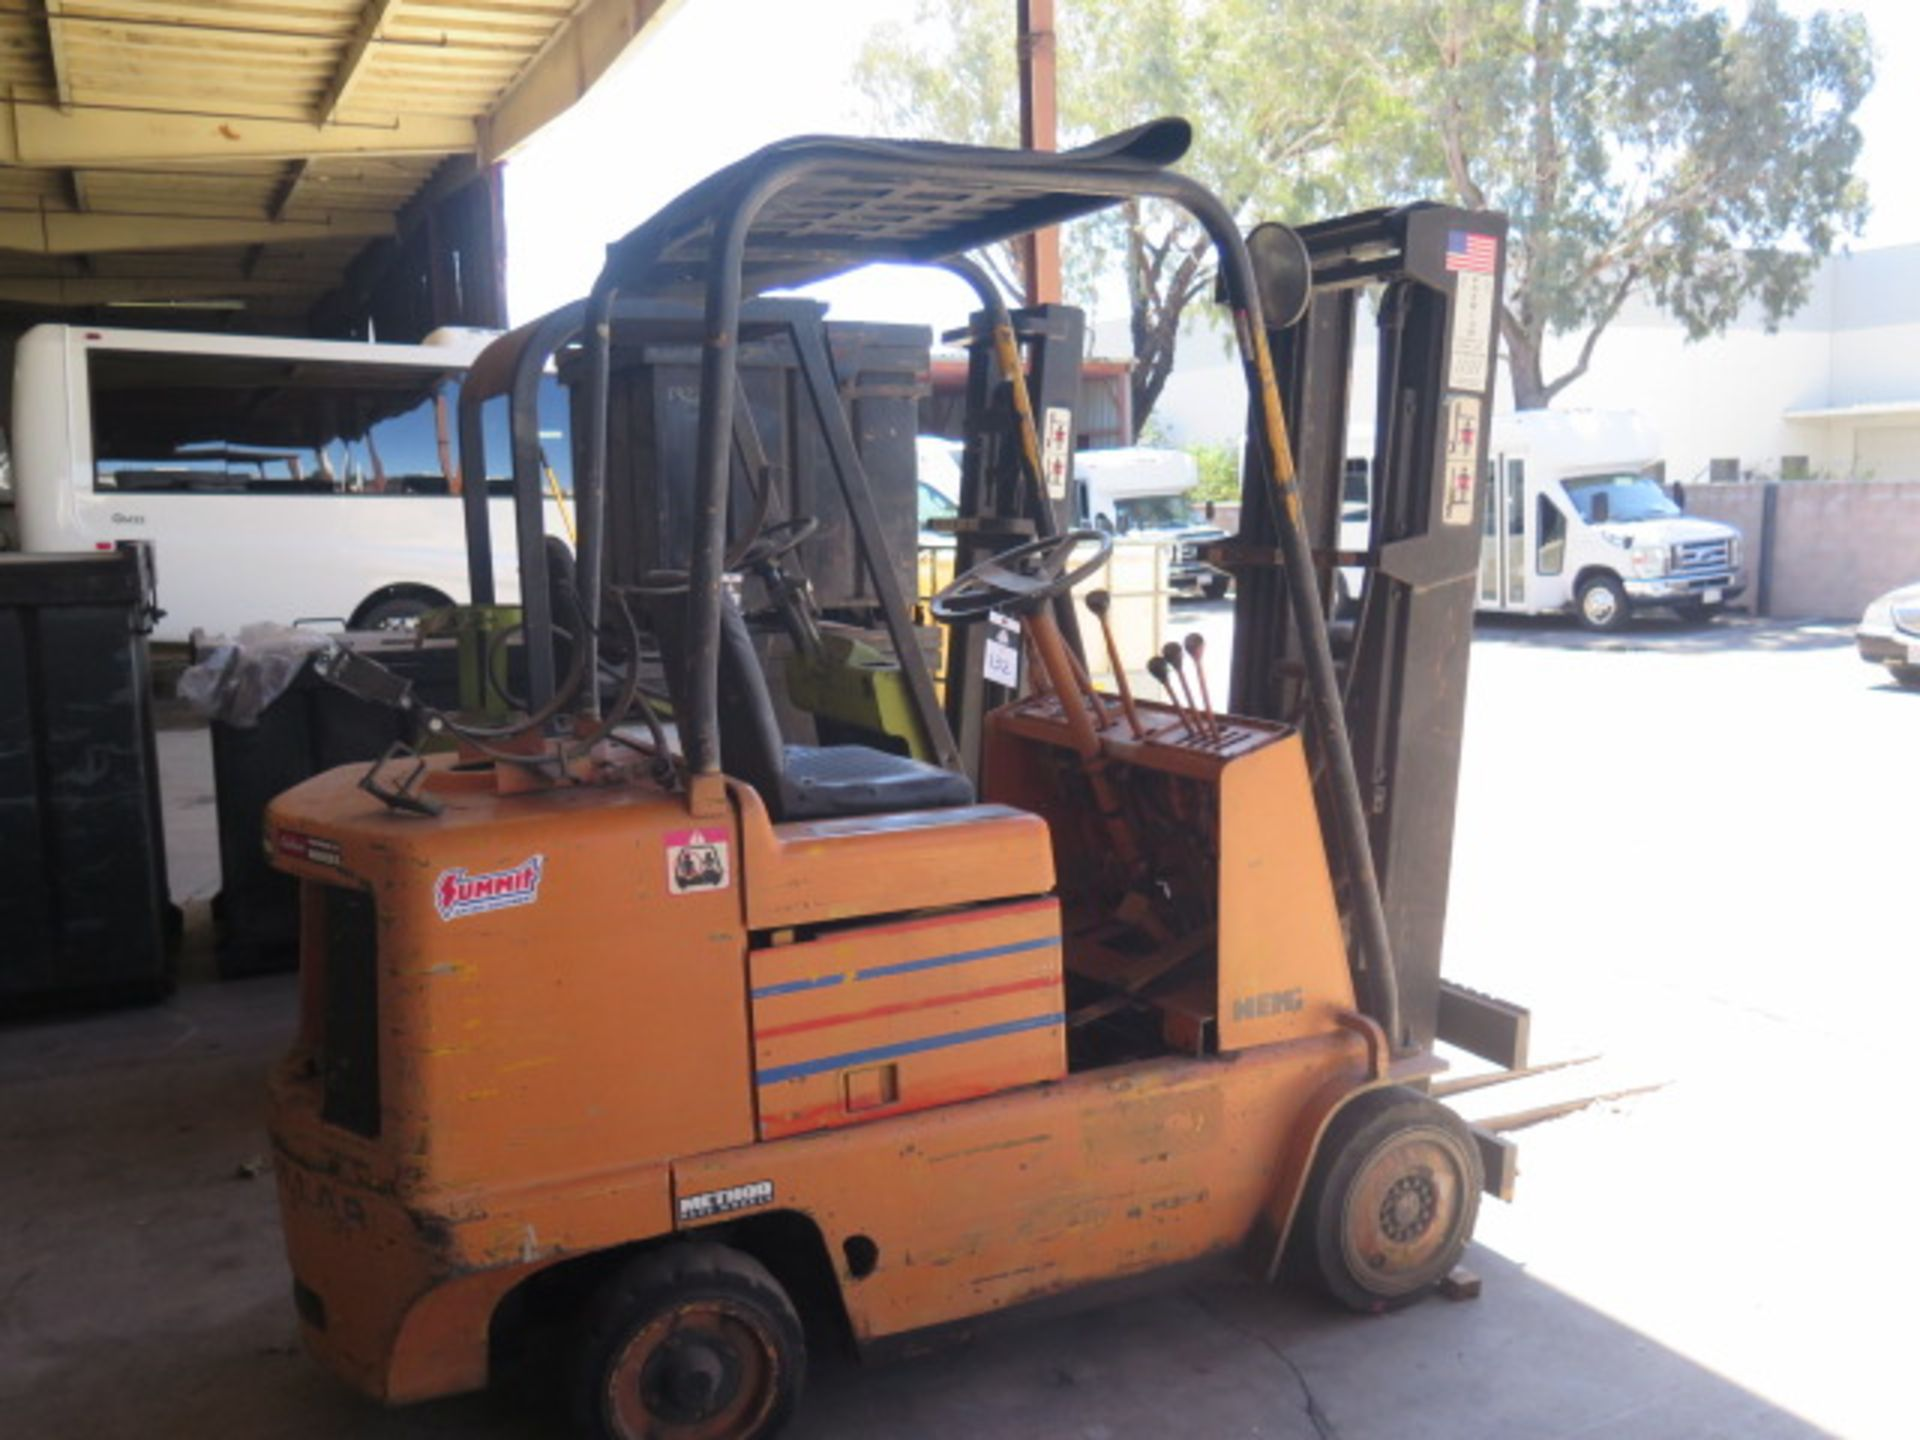 Caterpillar 4500 Lb Cap LPG Forklift s/n F235-83-2201172 (Condition Unknown) SOLD AS-IS - Image 2 of 13